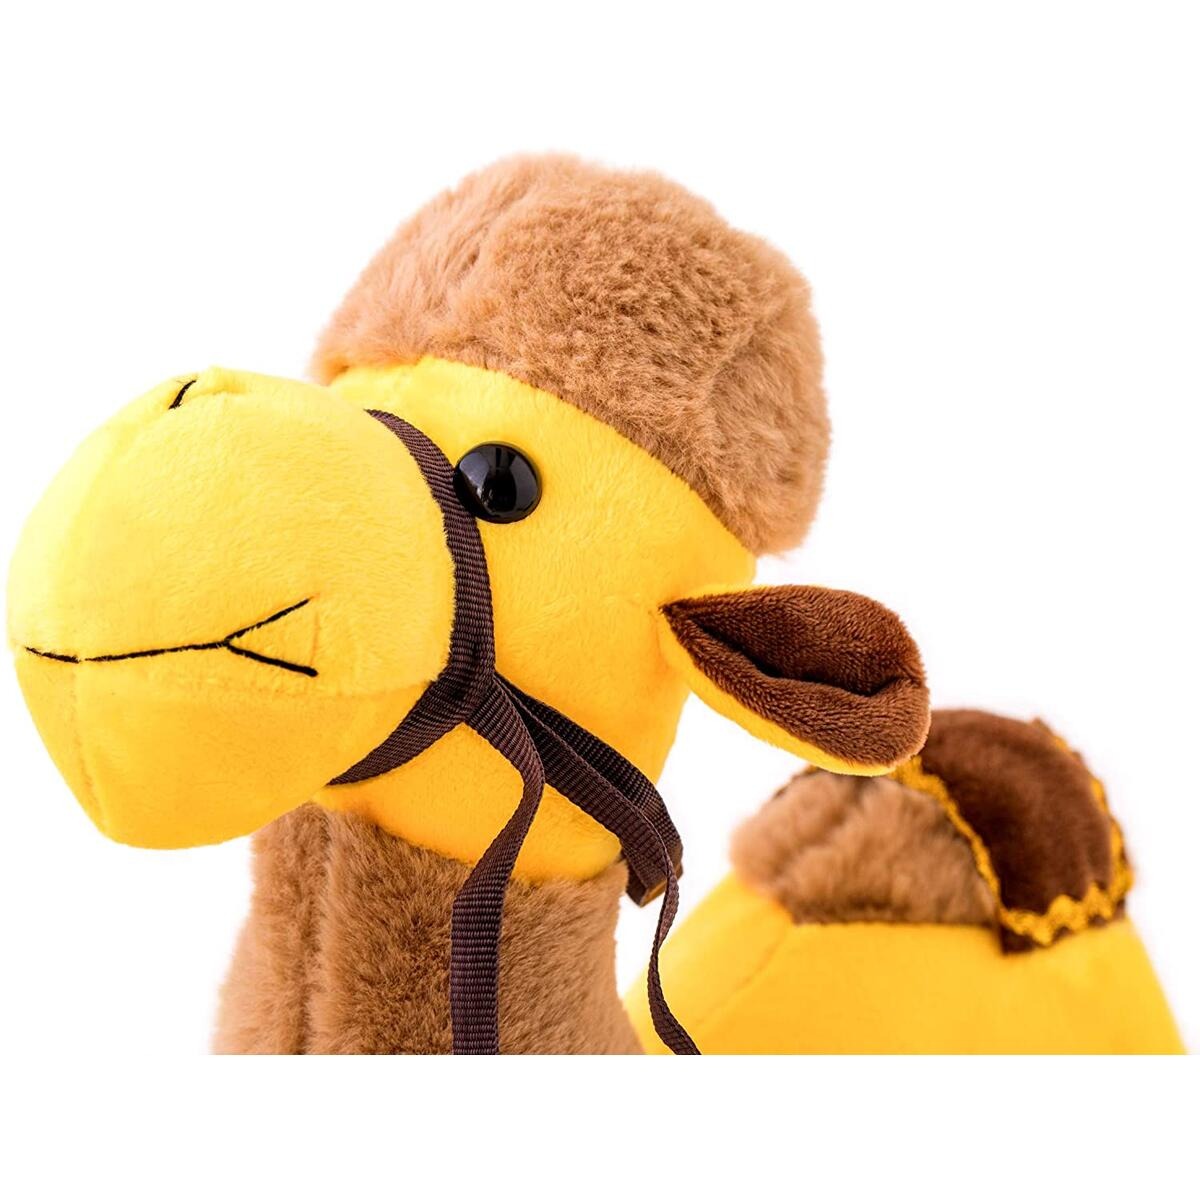 TorrisToys 16 Inches Baby Camel Stuffed Animal Plush Toy - Perfect Cute Large Toy Camel Plush for Babies - Great Camel Plush Toy Gift